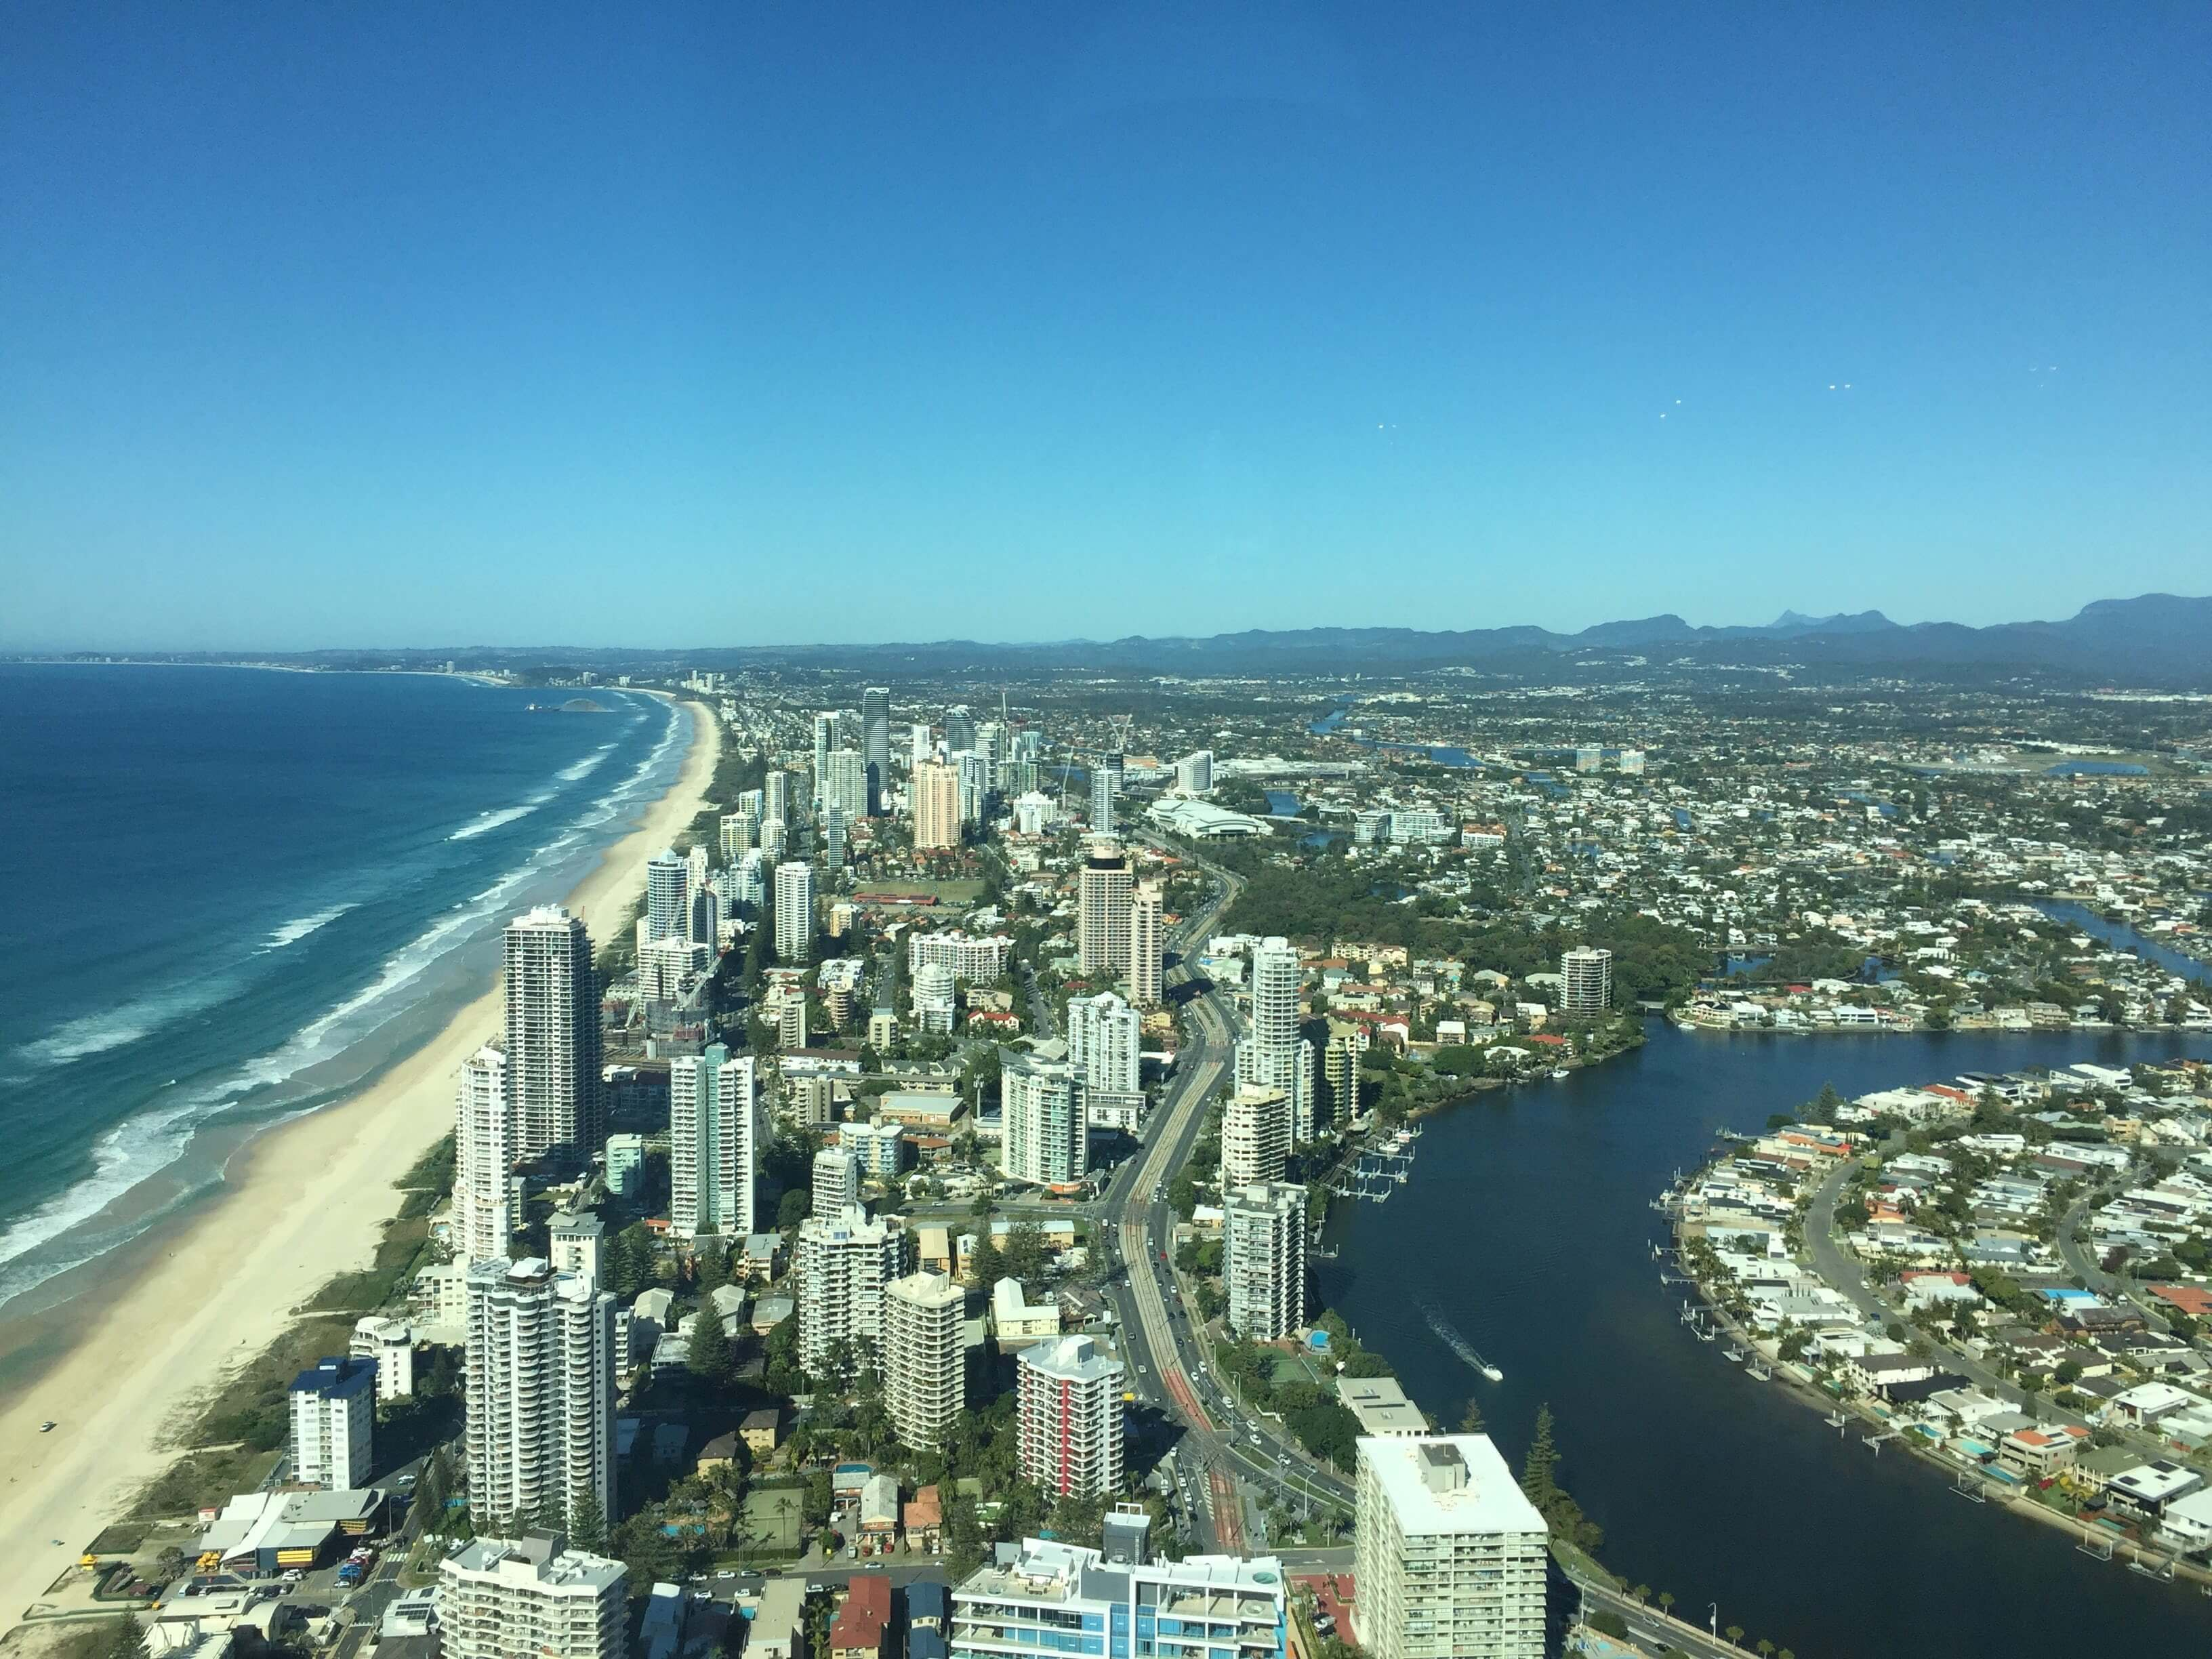 gold coast to cairns, sydney to cairns road trip distance, cairns to sydney itinerary 2 weeks, sydney to cairns map, sydney to cairns road trip stops, australia sydney to cairns itinerary, how long would it take to drive from cairns to sydney